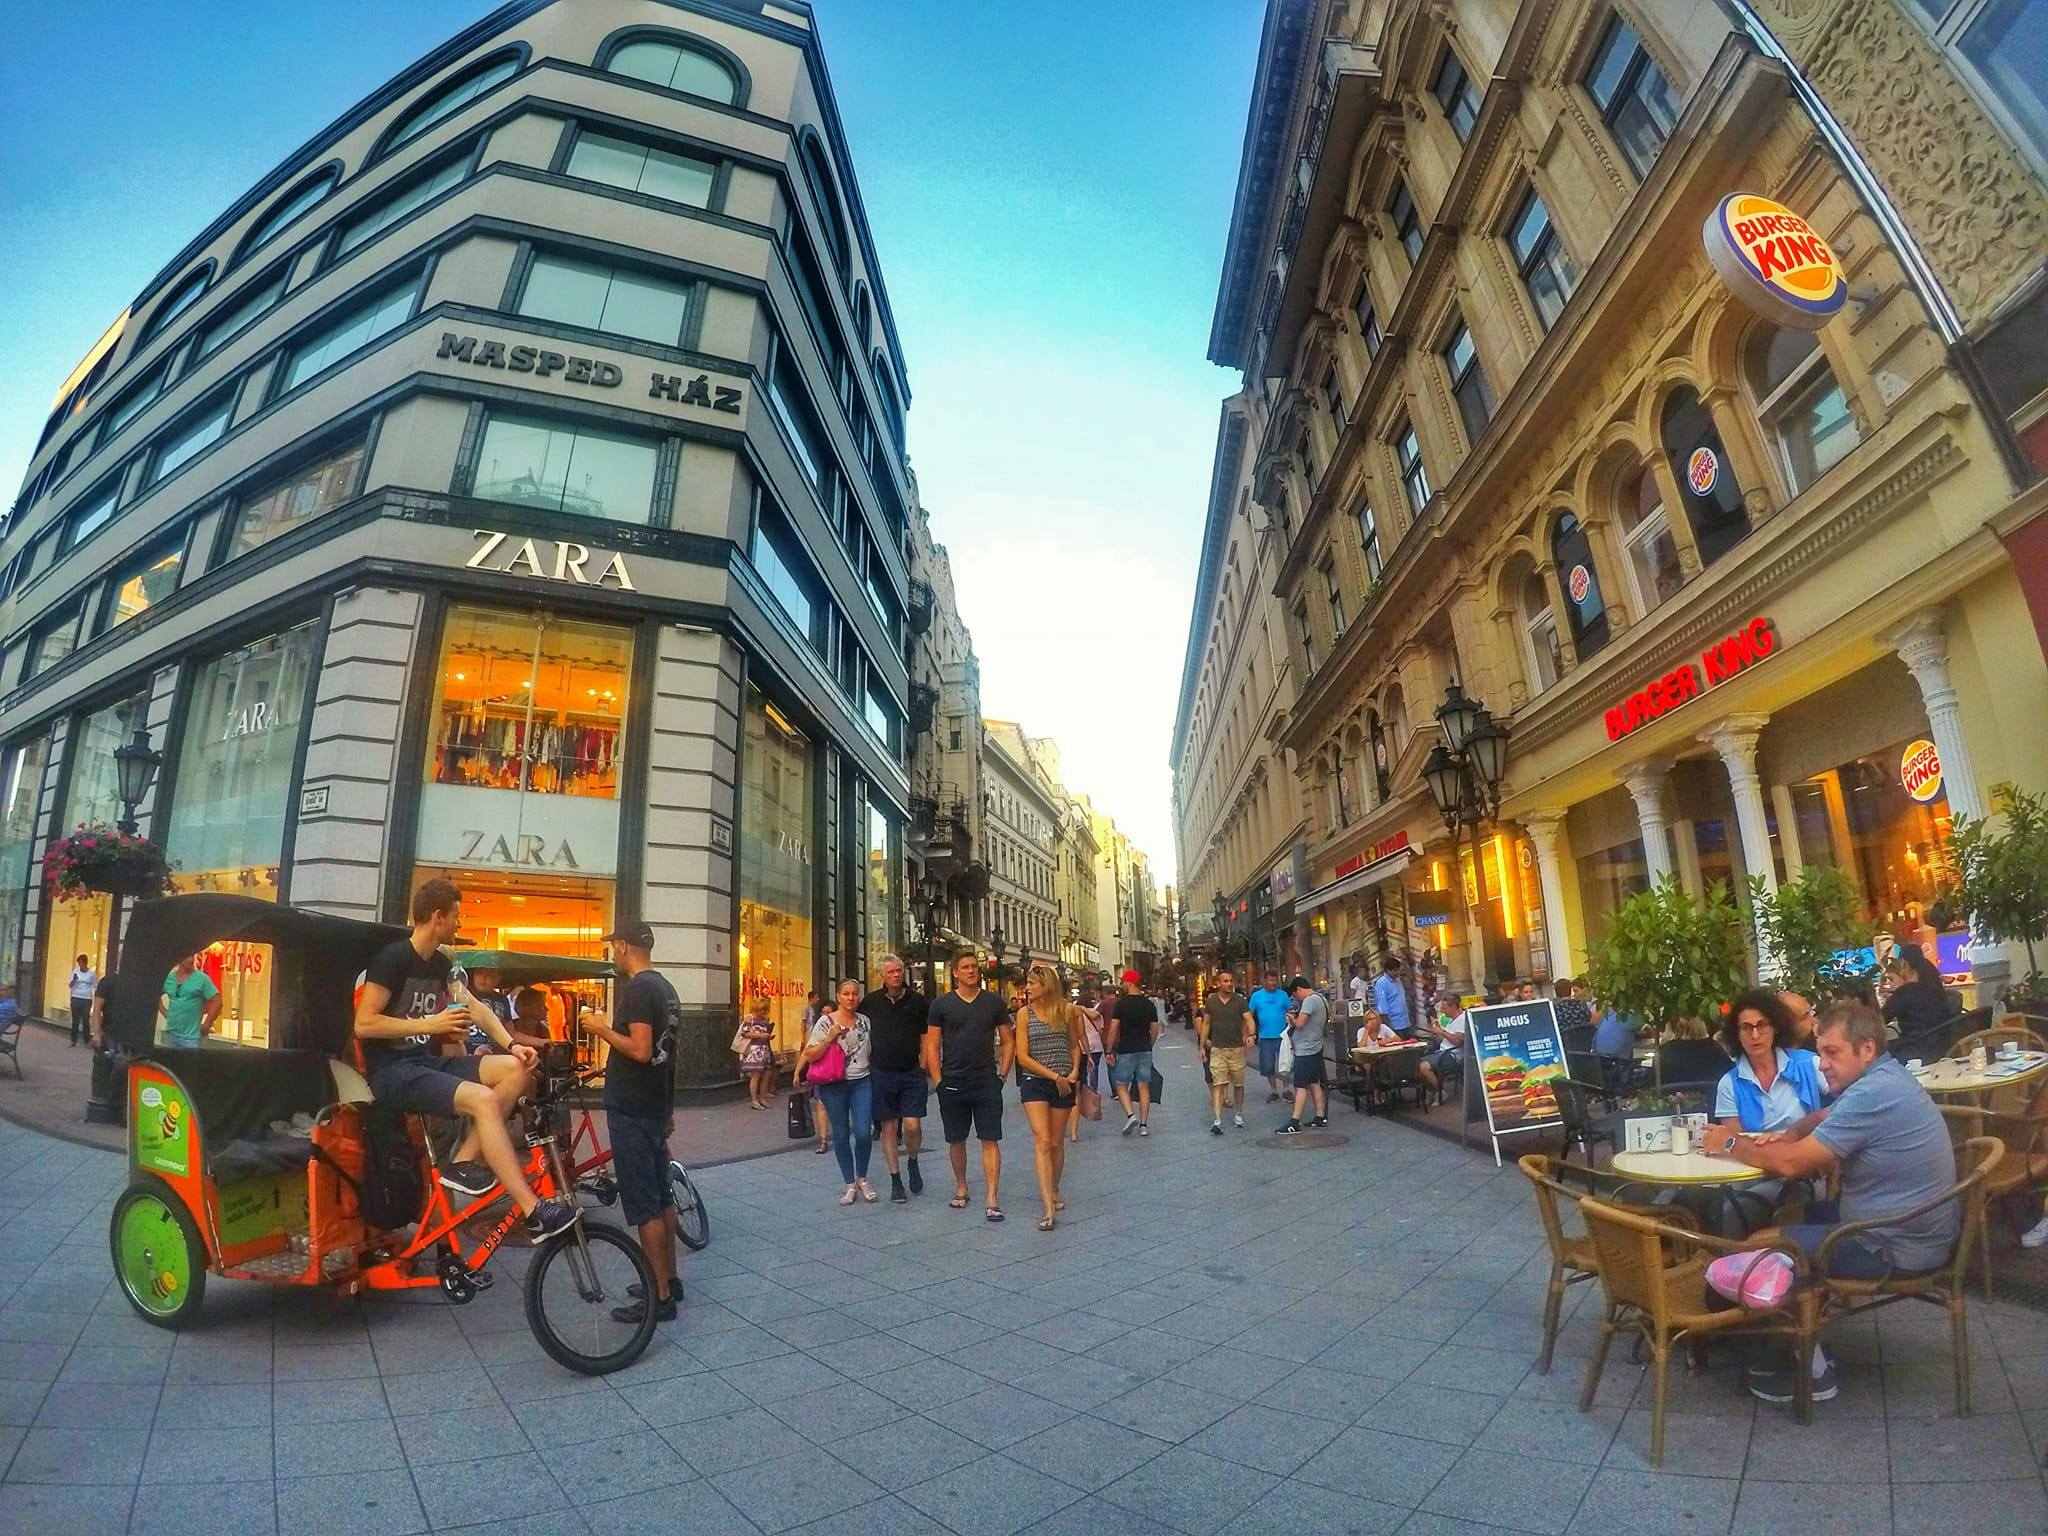 Top 10 Things To Do Budapest - Shopping street